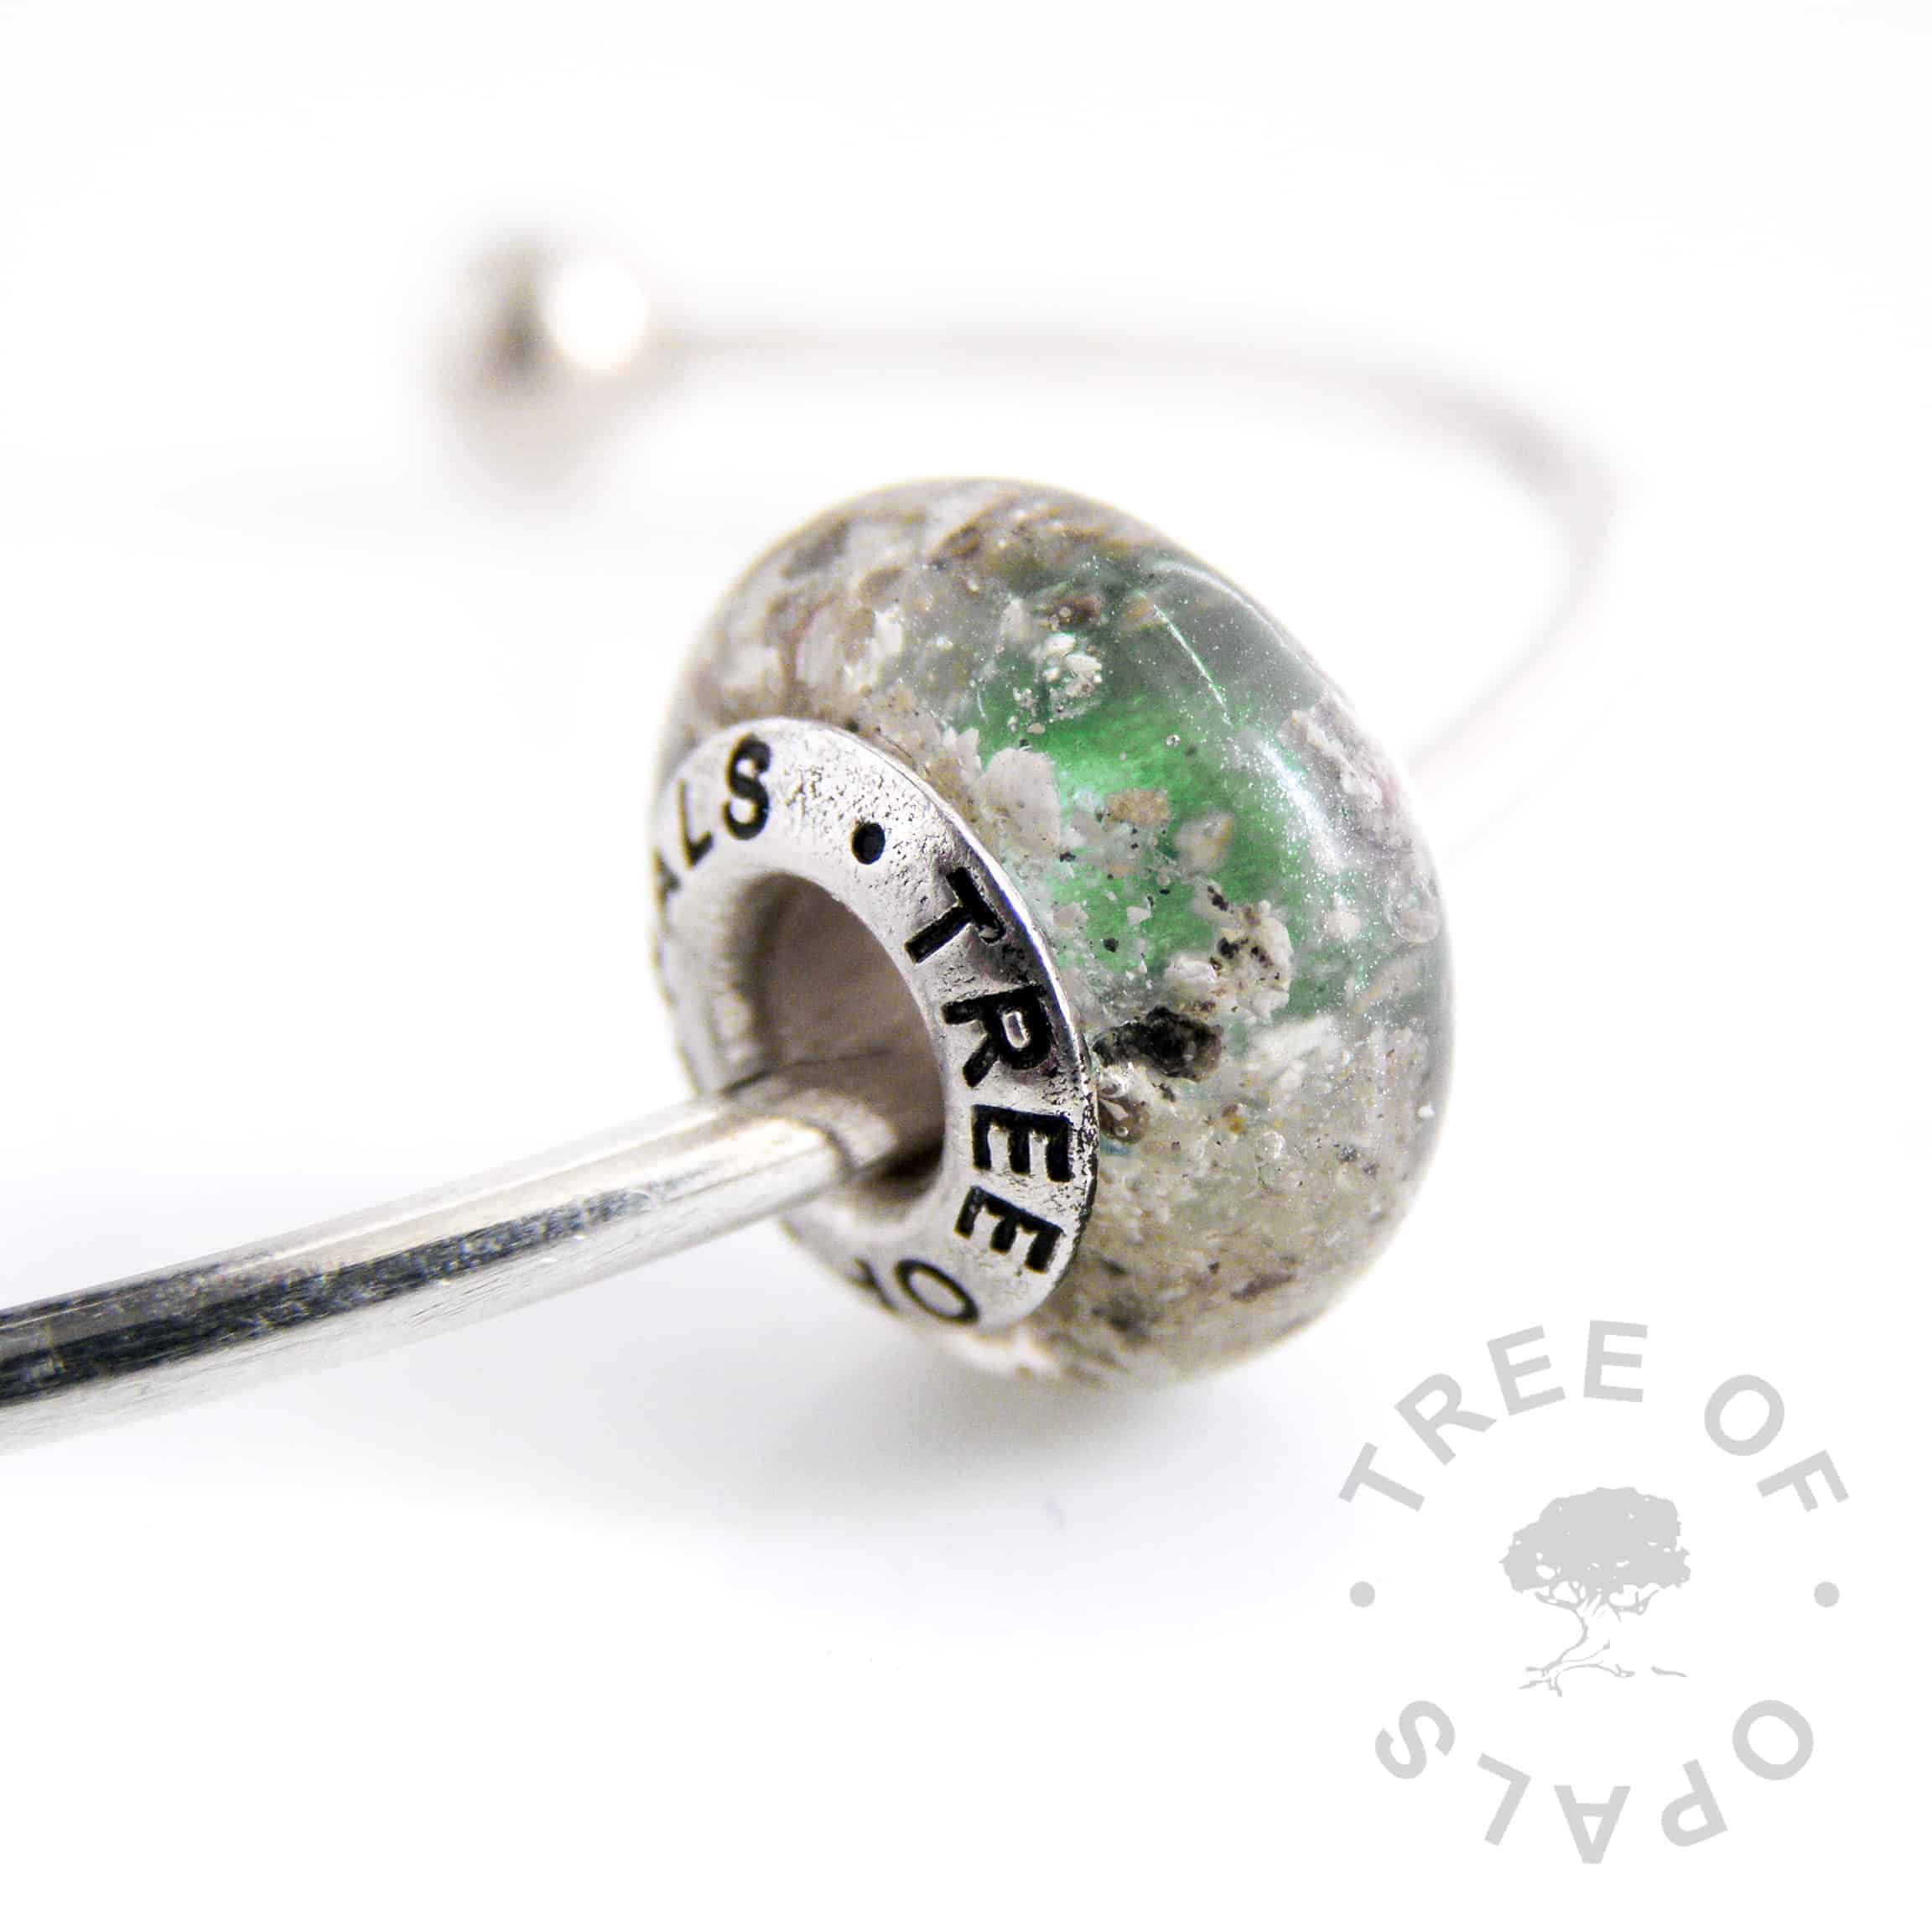 cremation ash charm green shimmer painted core